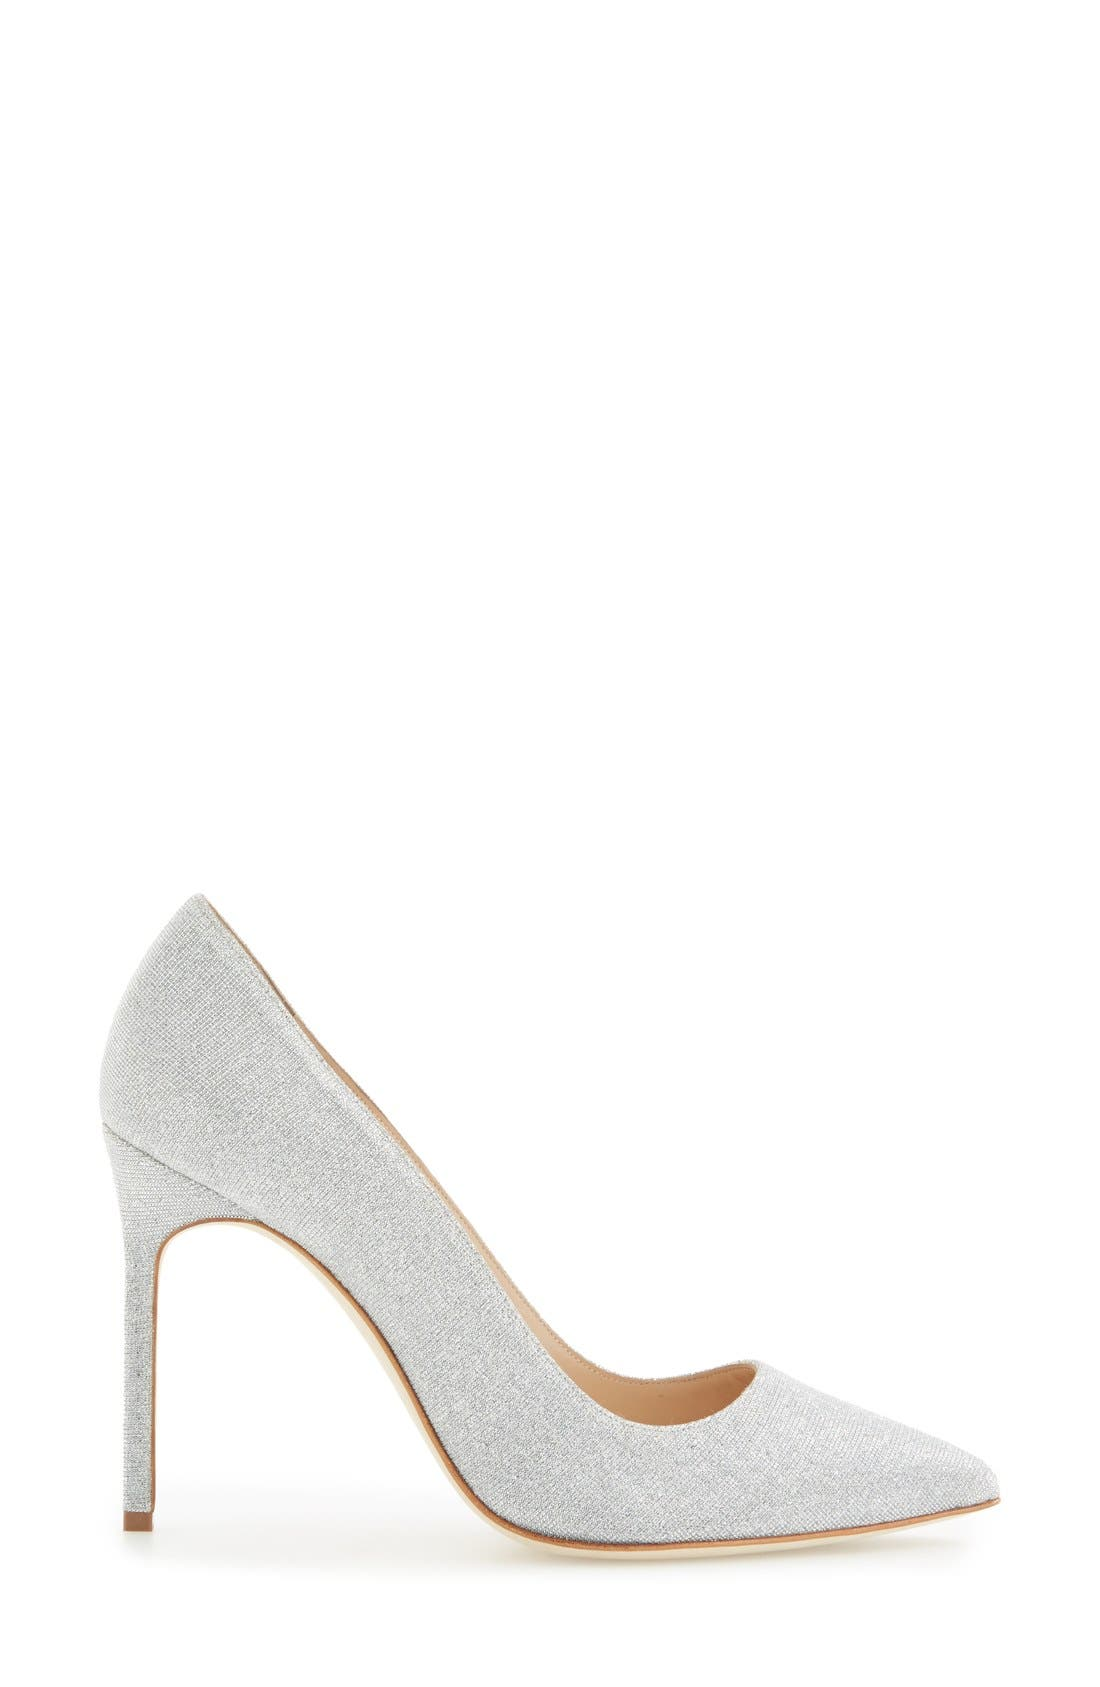 BB Pointy Toe Pump,                             Alternate thumbnail 49, color,